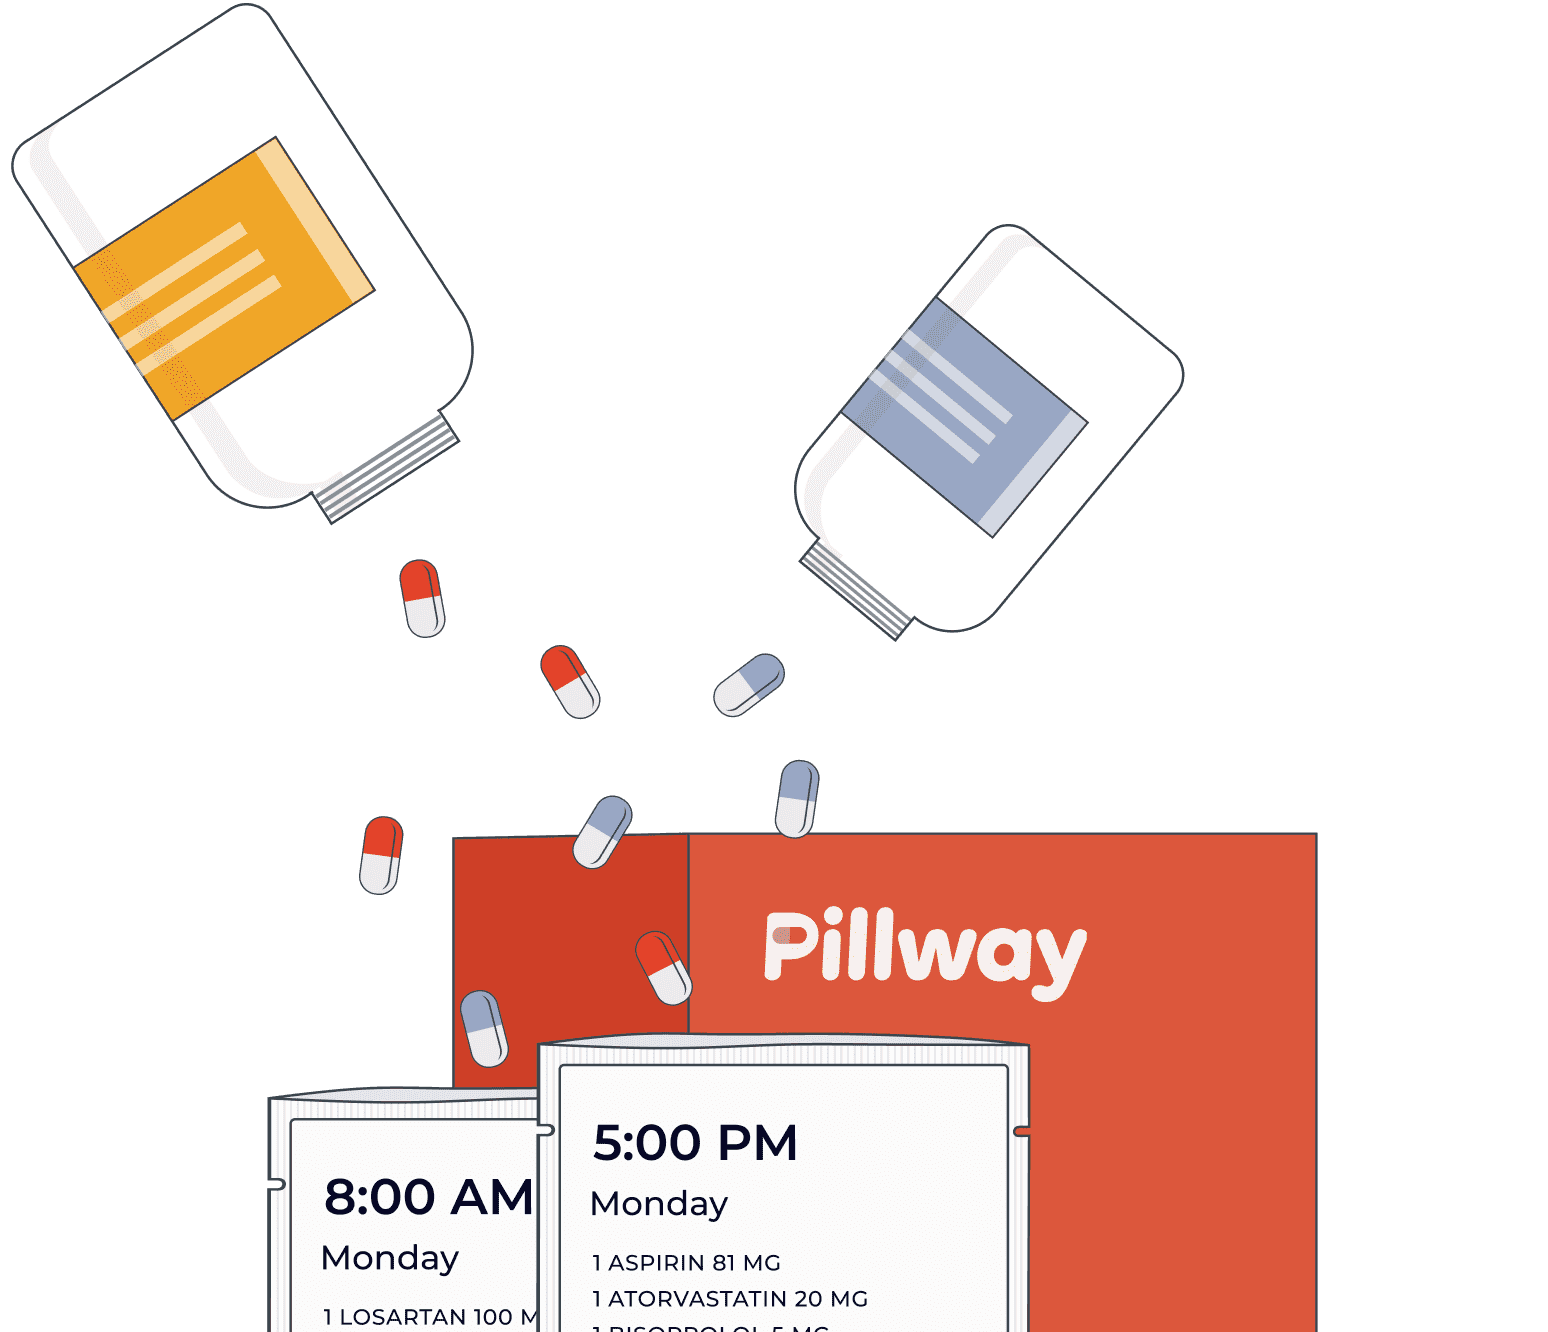 Two medicine bottles tilted upside down, dispensing pills into two Pillway medicine packets that indicate time and day. One packet is labeled 8AM Monday with medicine list and second packet is labeled 5PM Monday with medicine list. There is a red Pillway box in the background.